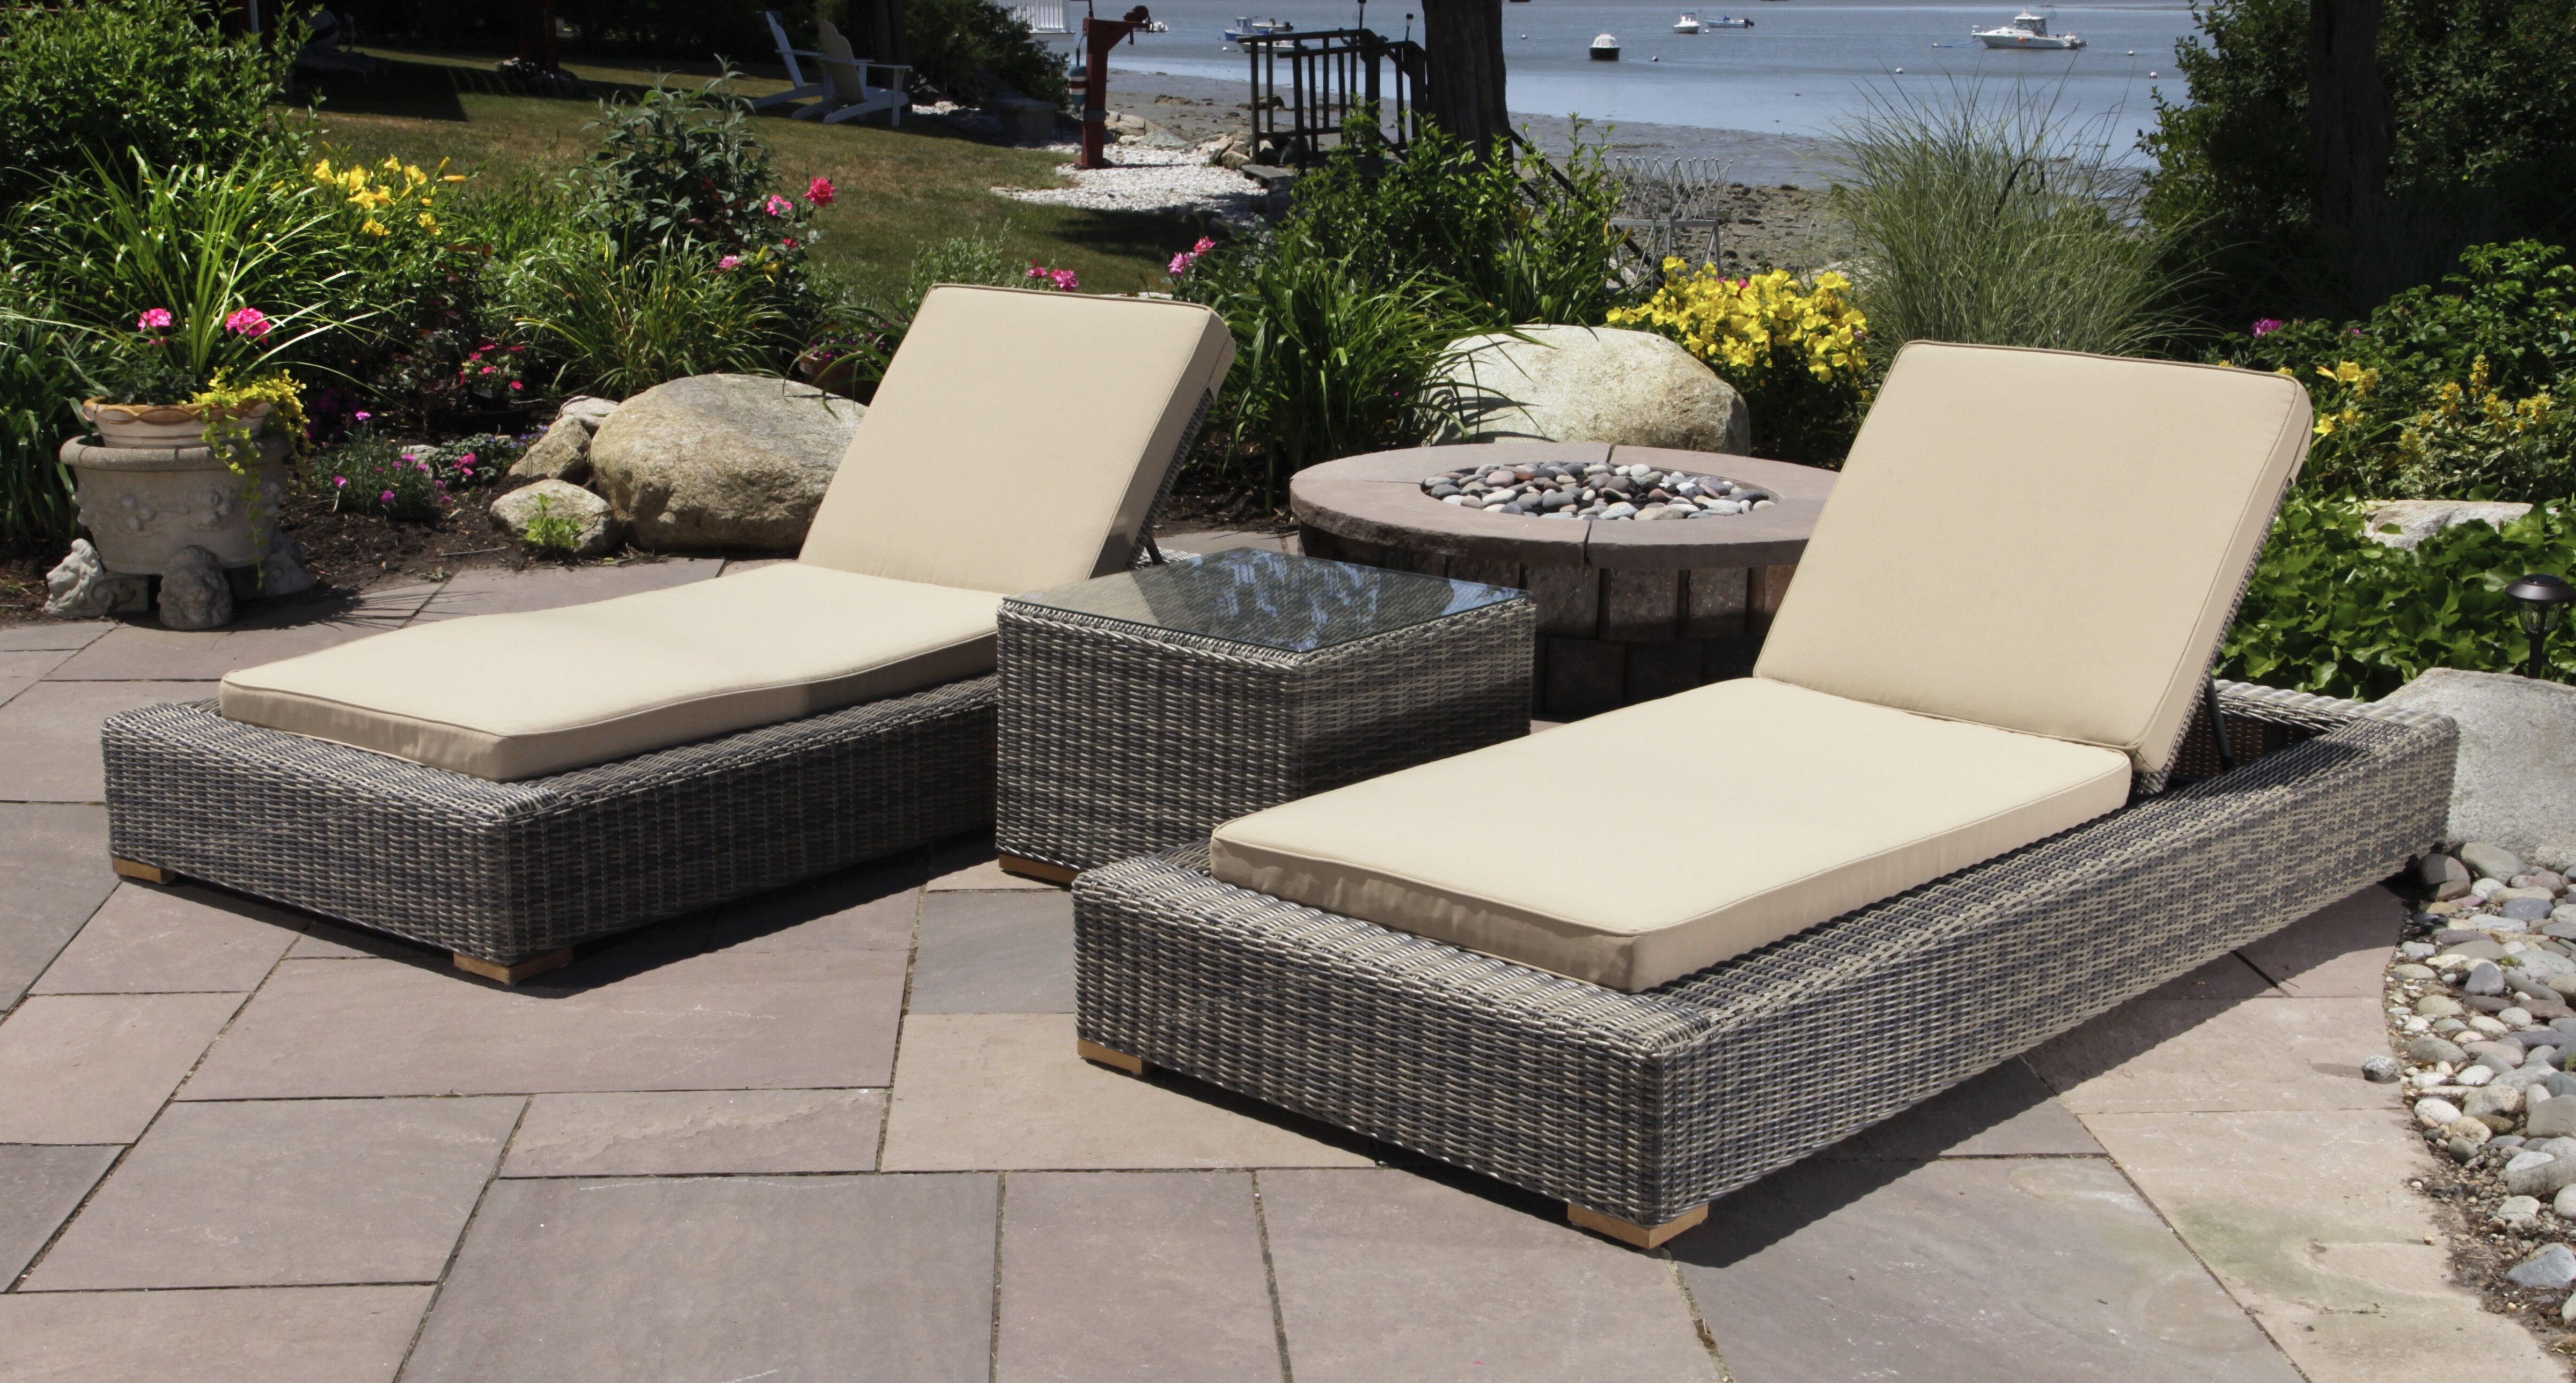 Corsica 3 Piece Chaise Lounge Set With Cushions And Table With 2019 Outdoor 3 Piece Wicker Chaise Lounges And Table Sets (View 20 of 25)